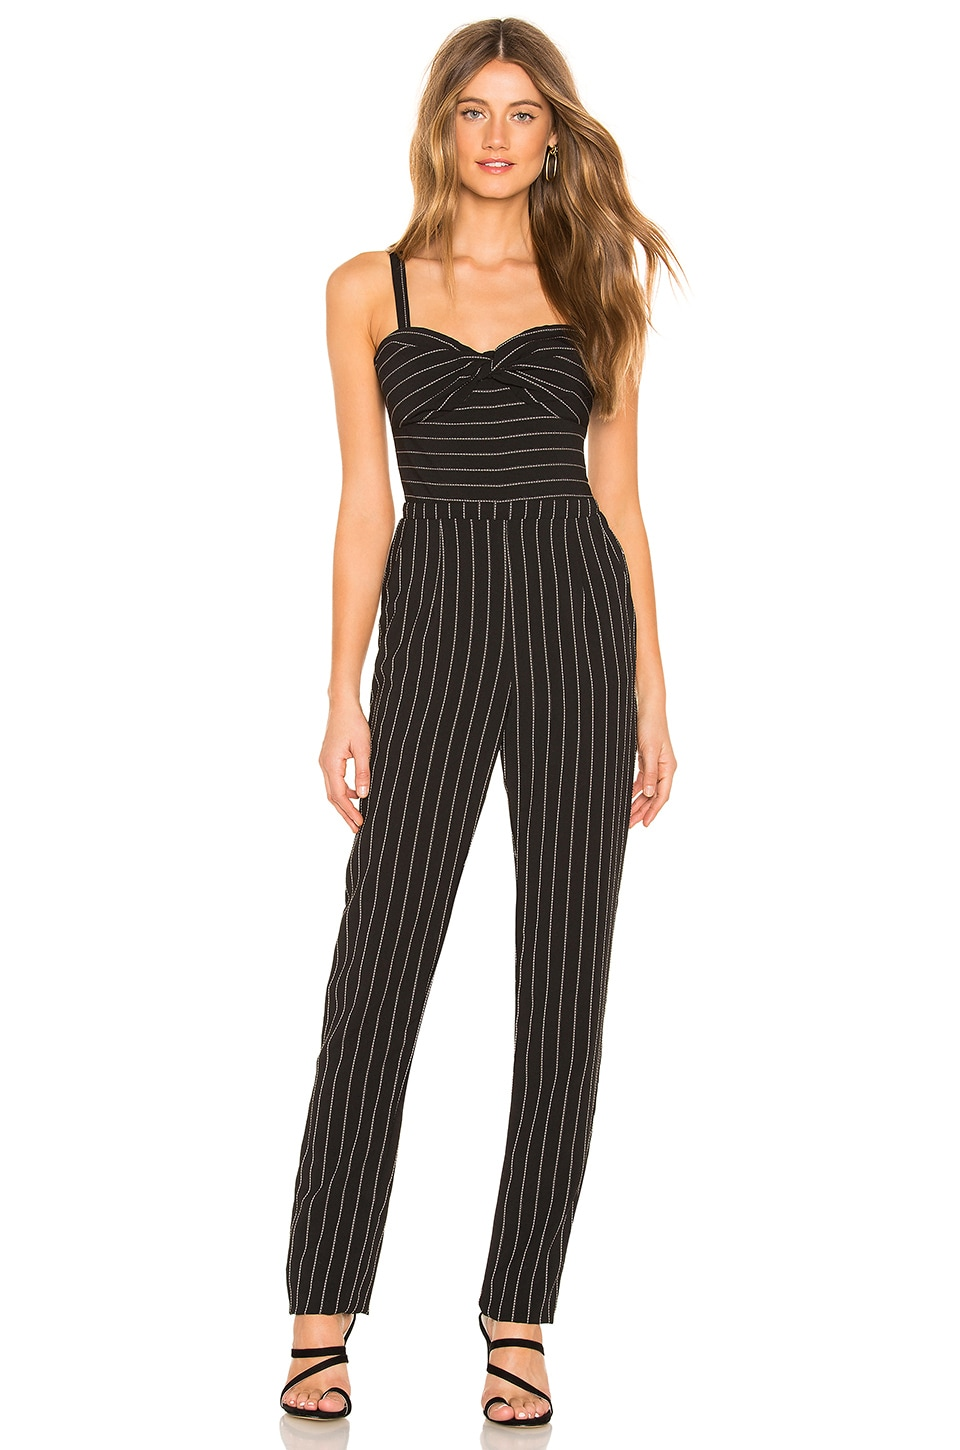 HEARTLOOM Arden Jumpsuit in Black